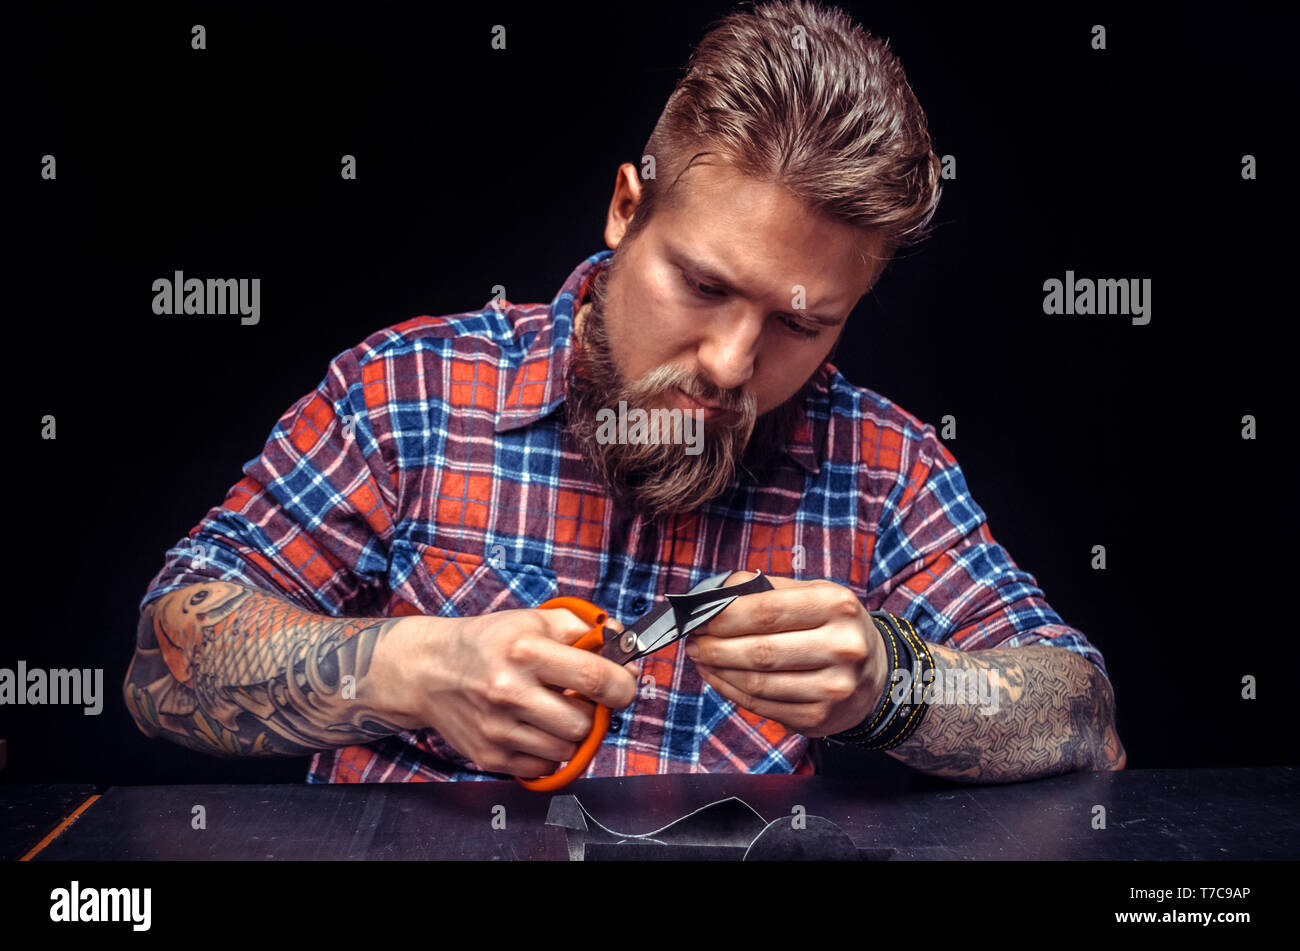 Artisan cutting leather outlines for his new production - Stock Image